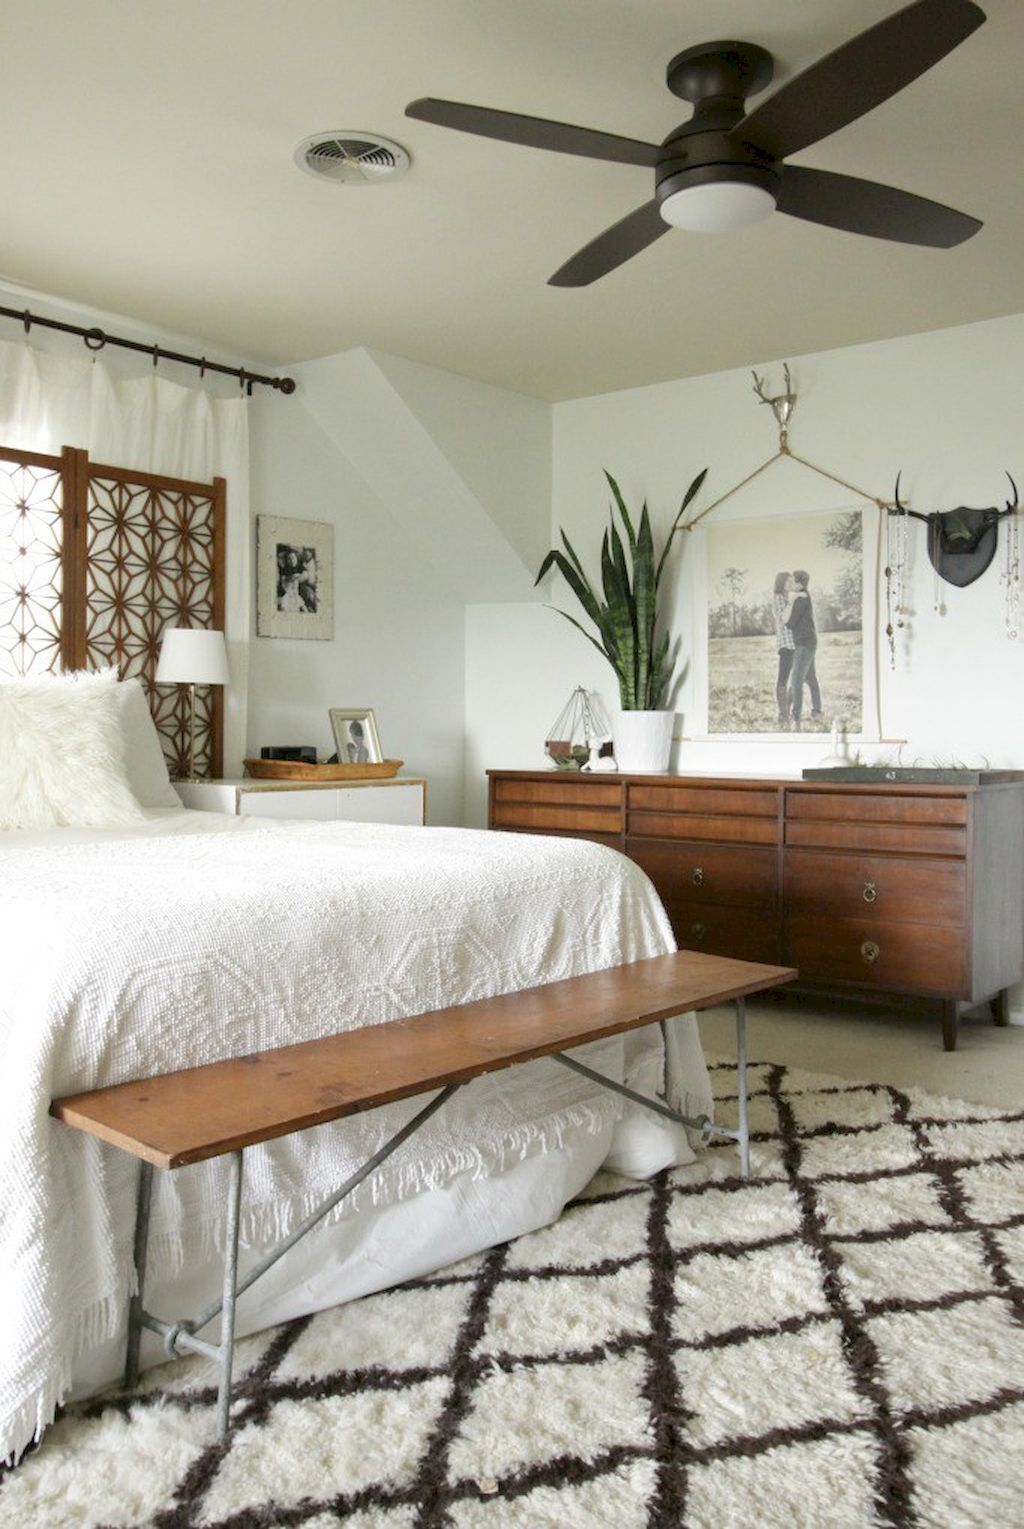 60 Eclectic Bedroom Decorating Ideas On A Budget Bedroom